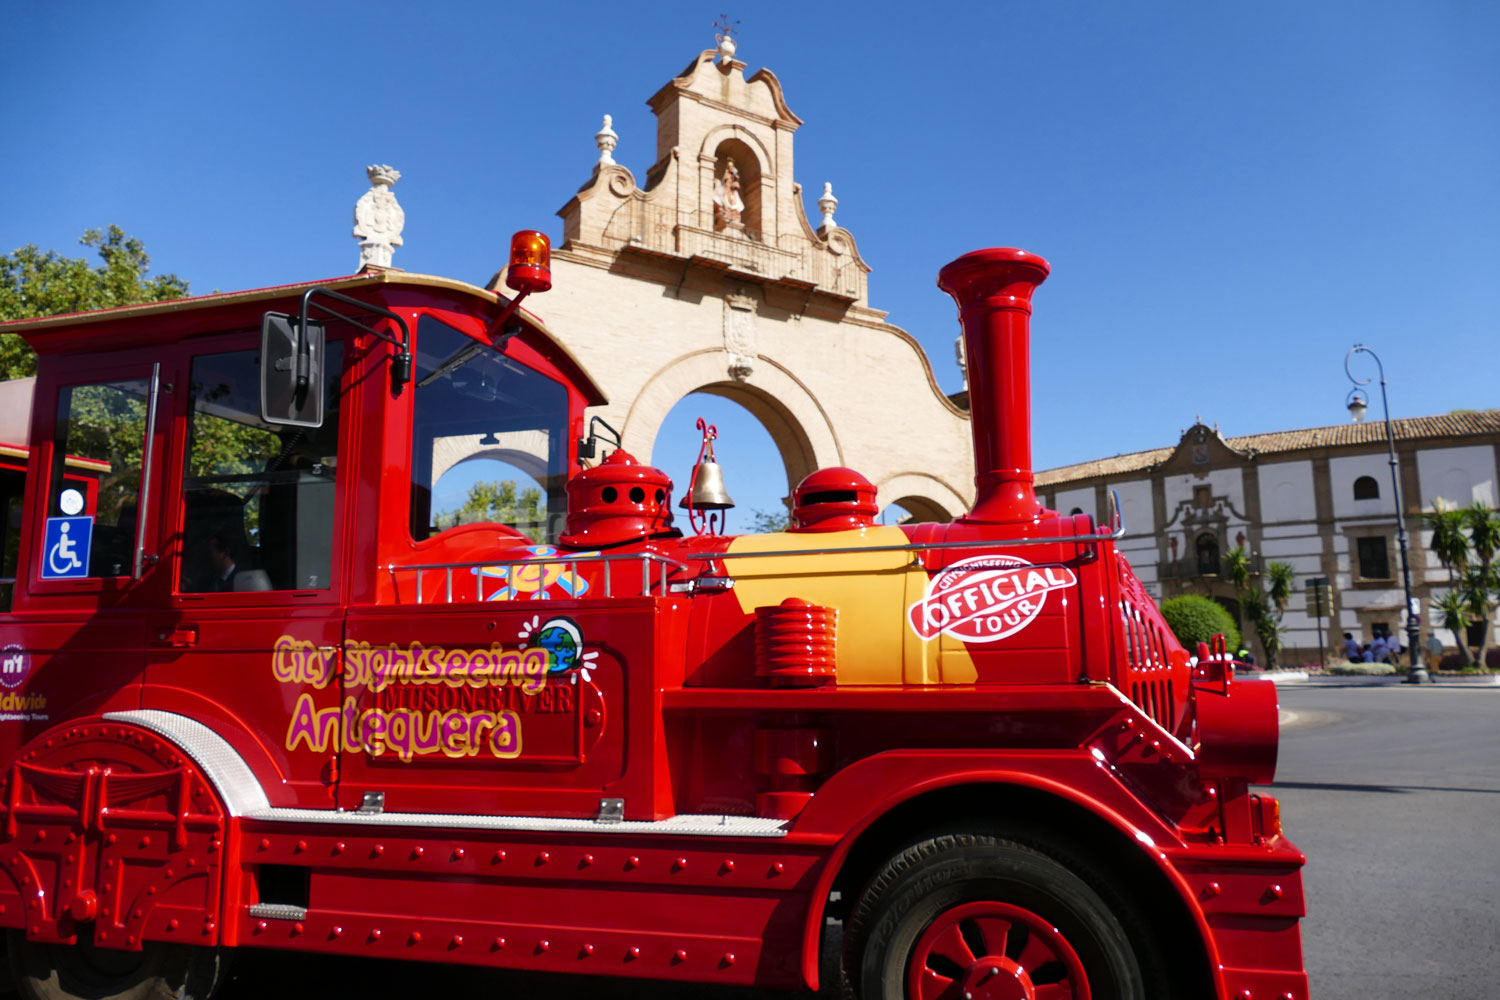 locomotora city sightseeing antequera